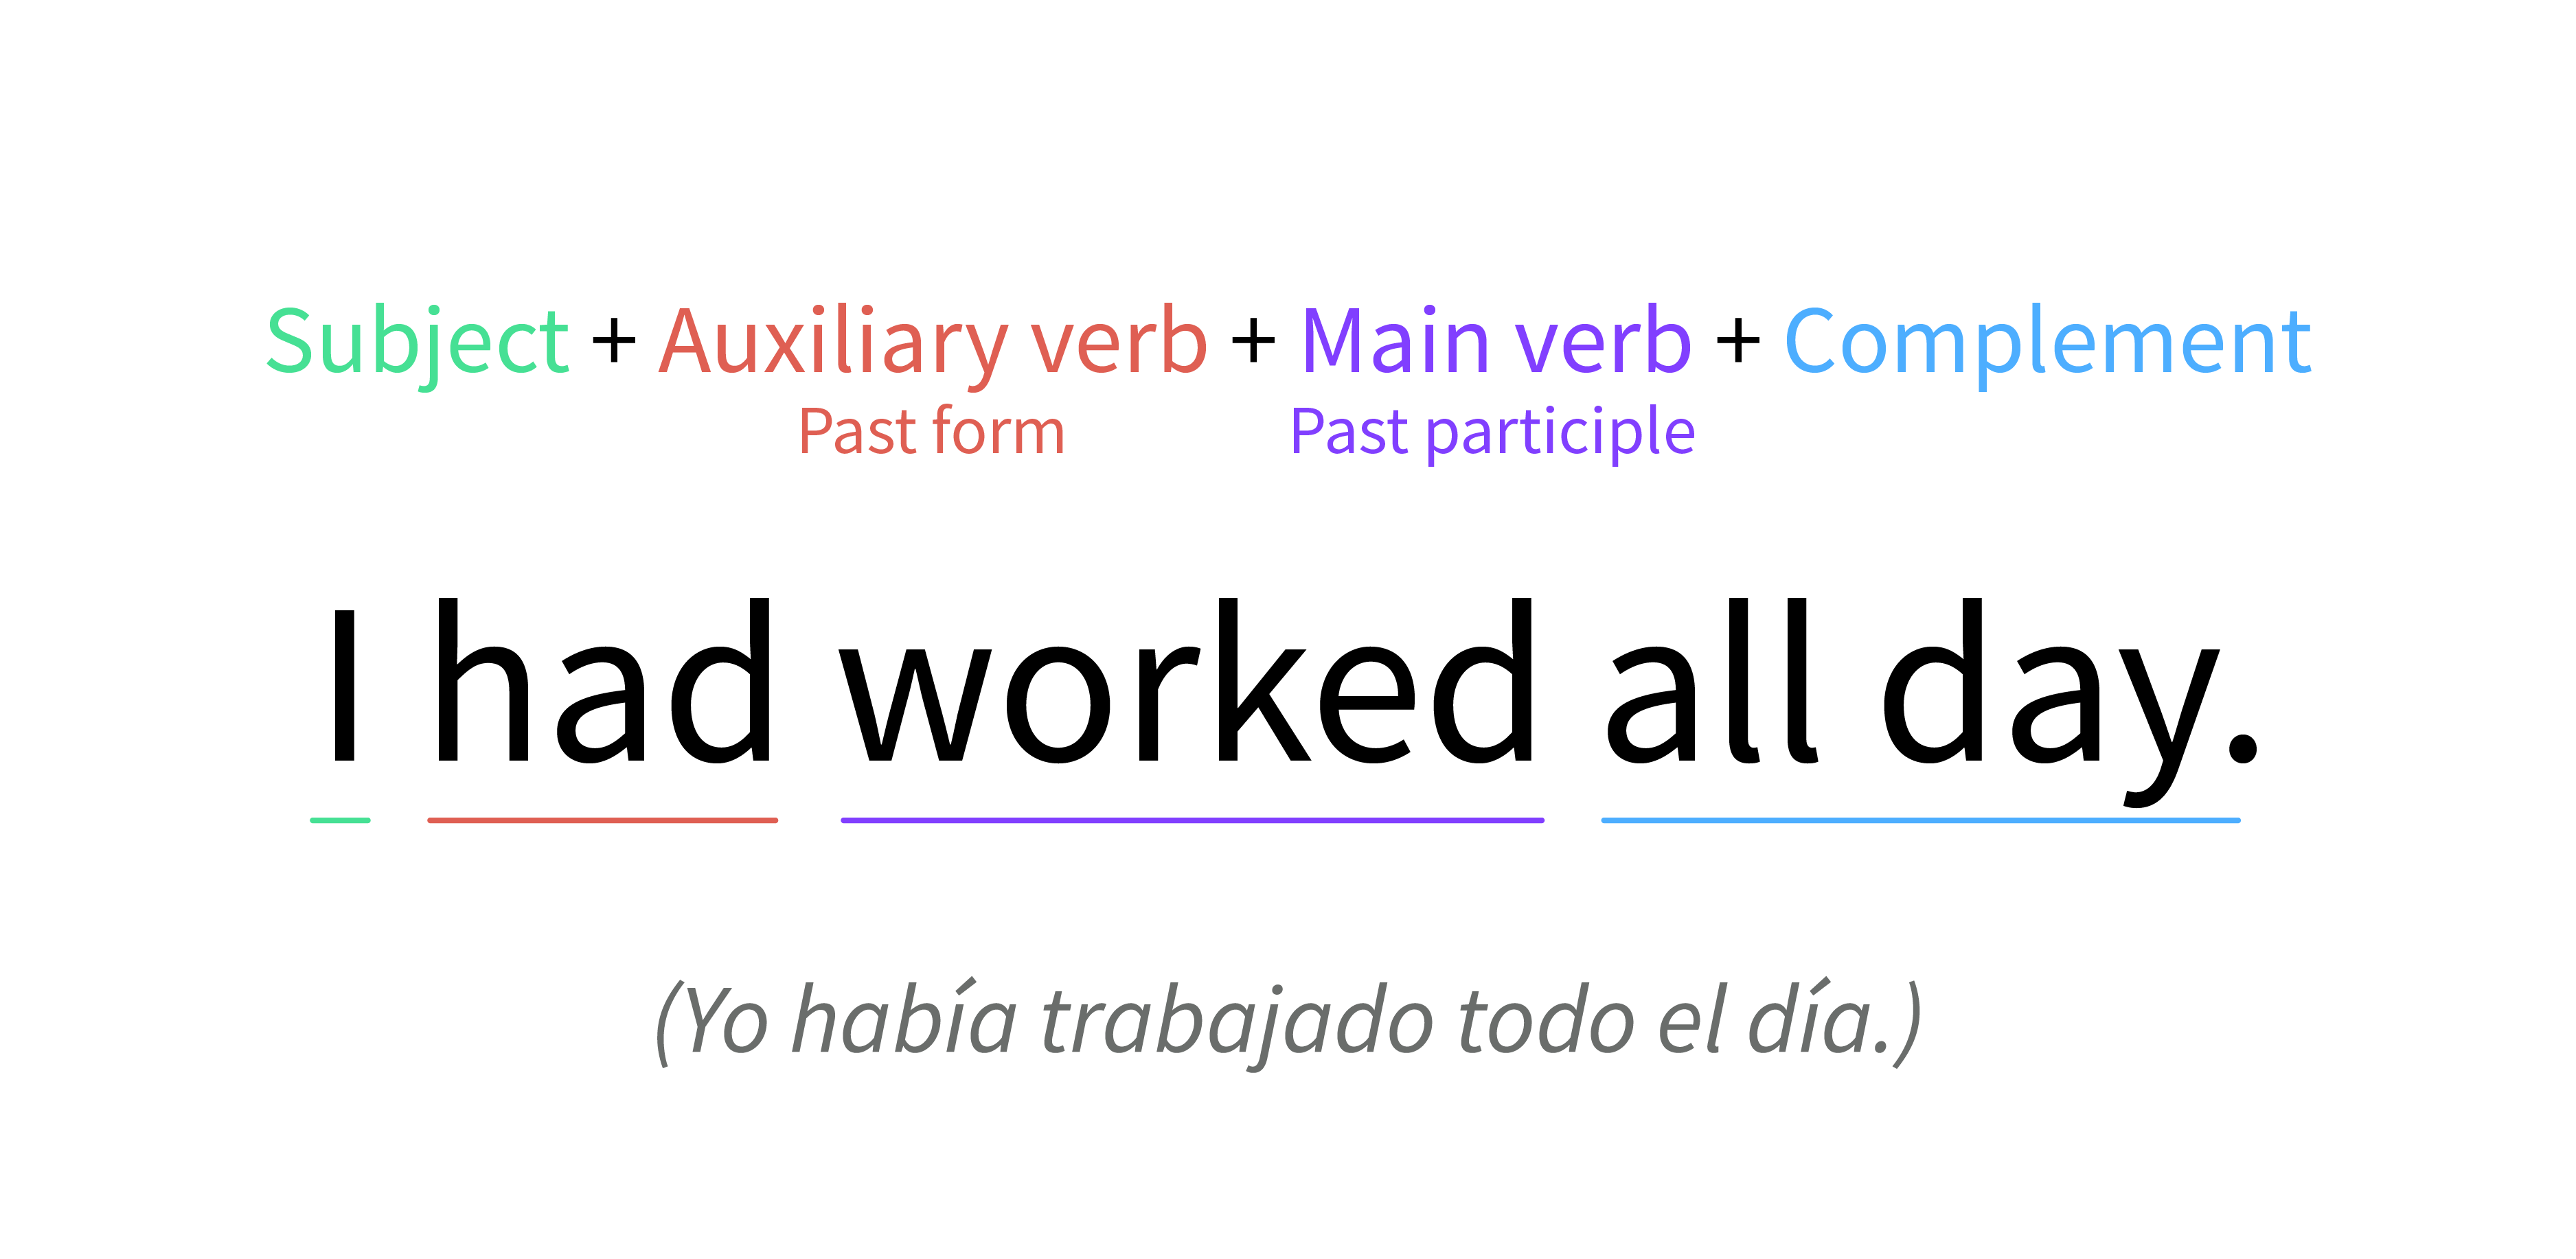 Verbo to have como auxiliar de past perfect tense.